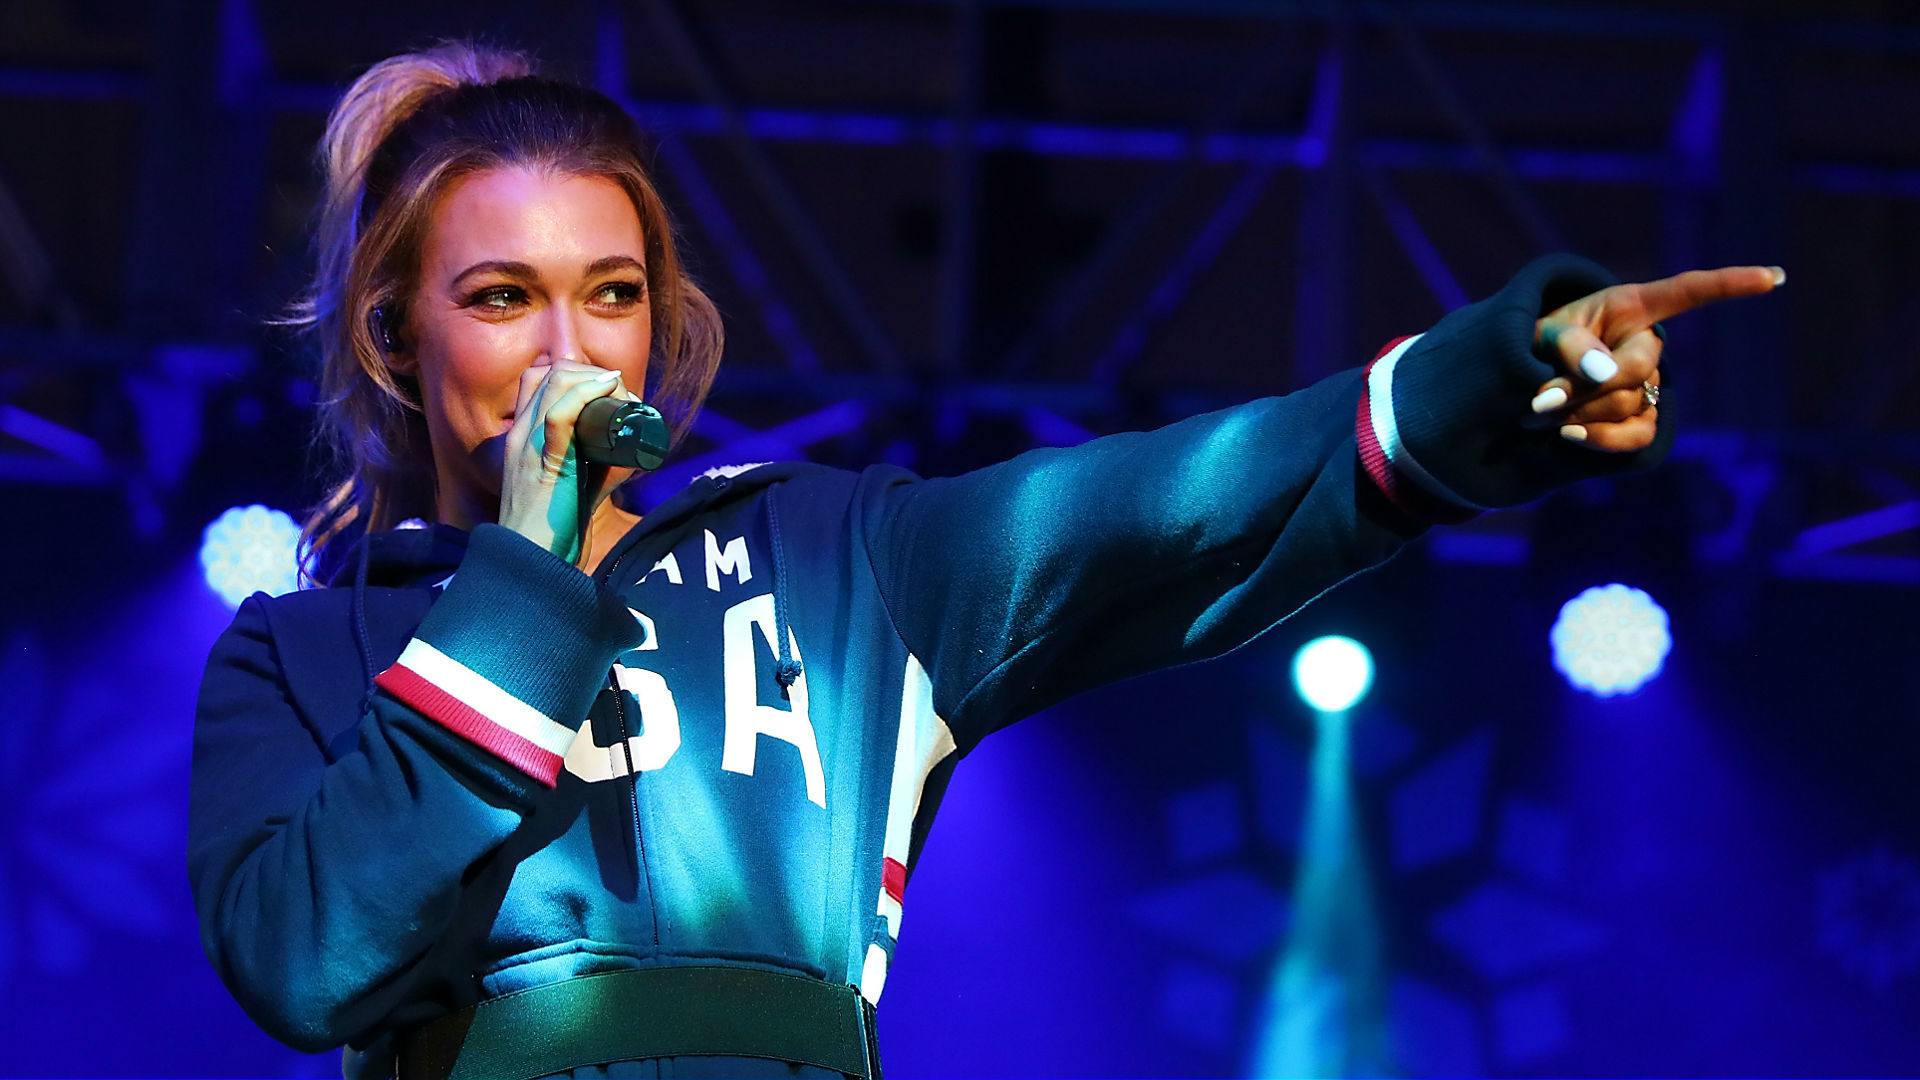 Singer Rachel Platten messes up US national anthem - twice